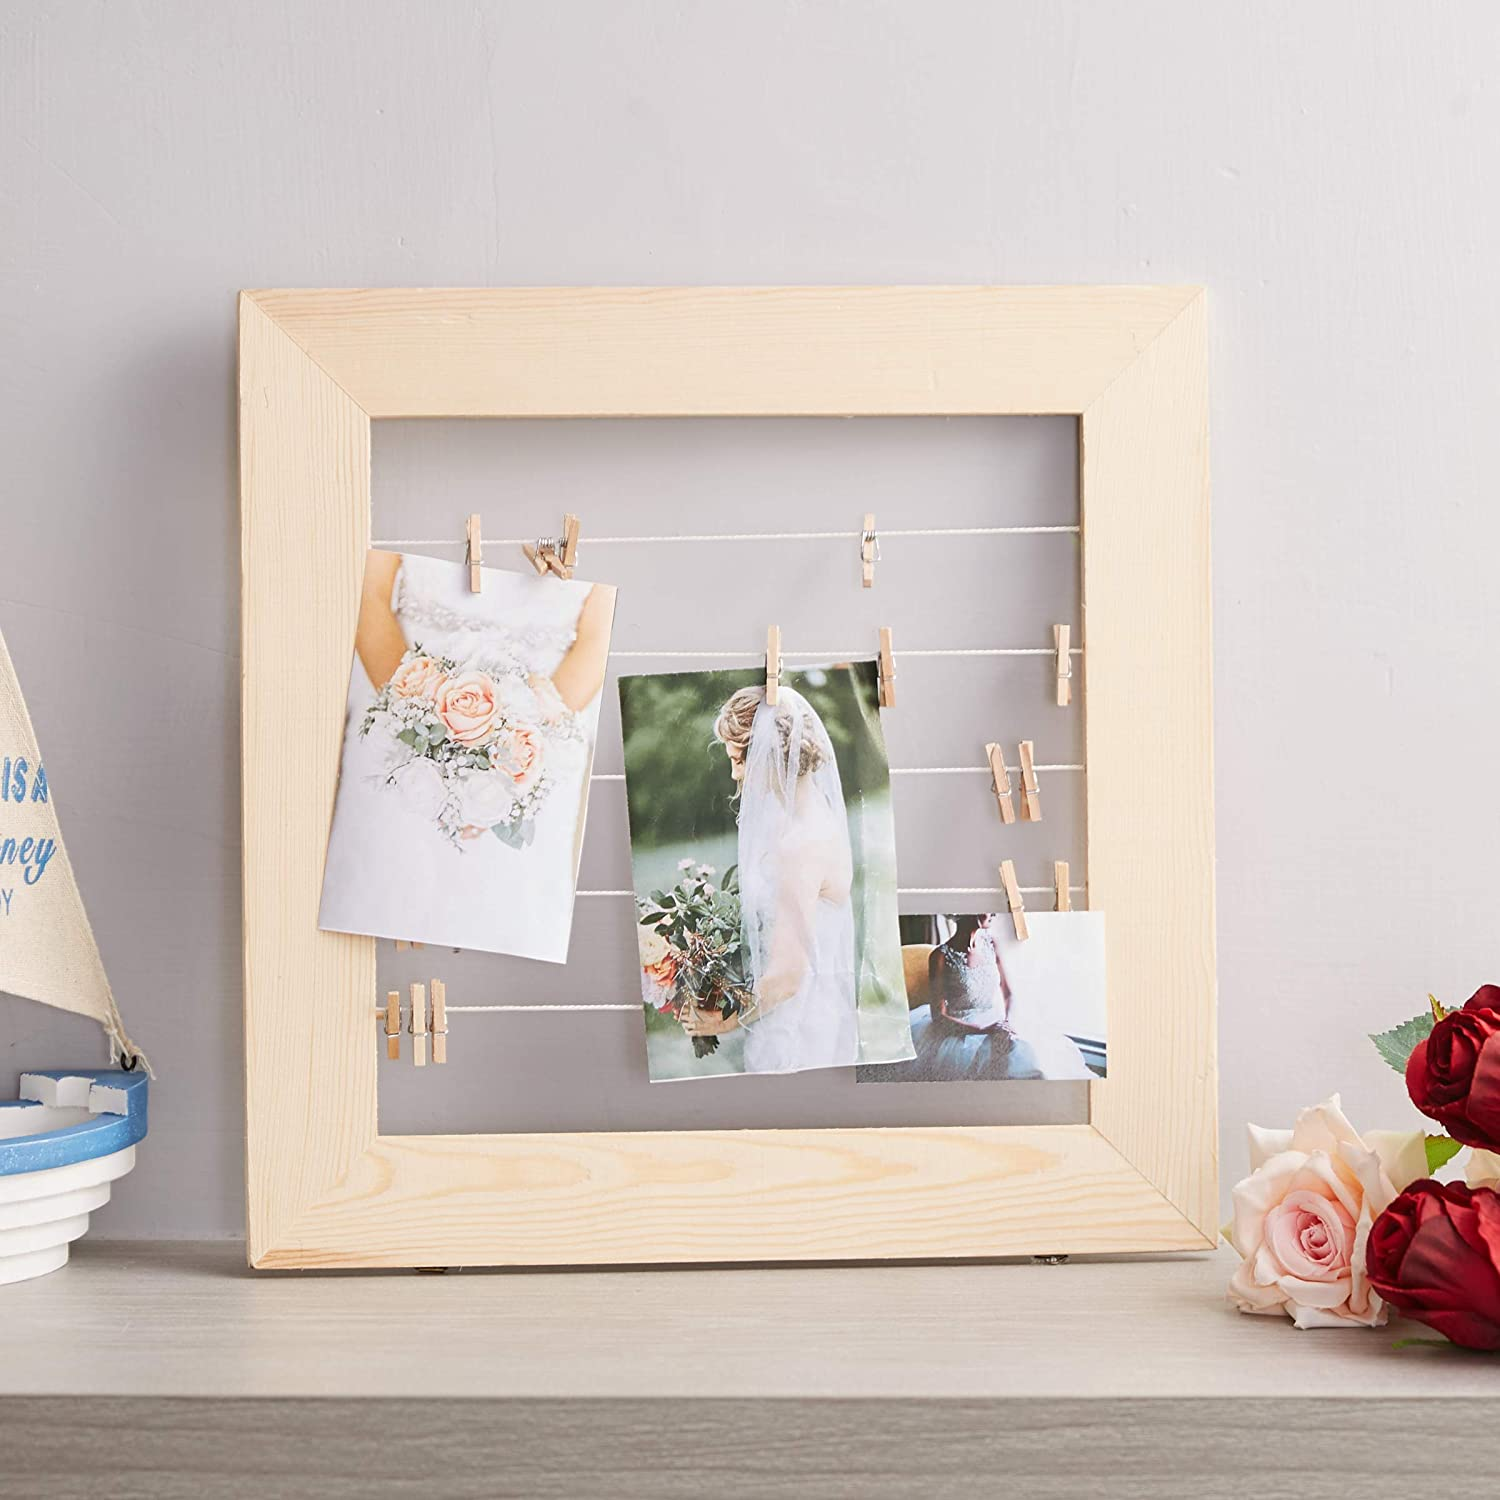 Juvale Wood Hanging Photo Display - Wooden Picture Frame with Clips, Rustic Collage Board, for Hanging Photos, Cards, Postcards, Polaroid, Prints, Art Craft Projects, 5 Lines, 11.8 x 11 x 0.3 Inches